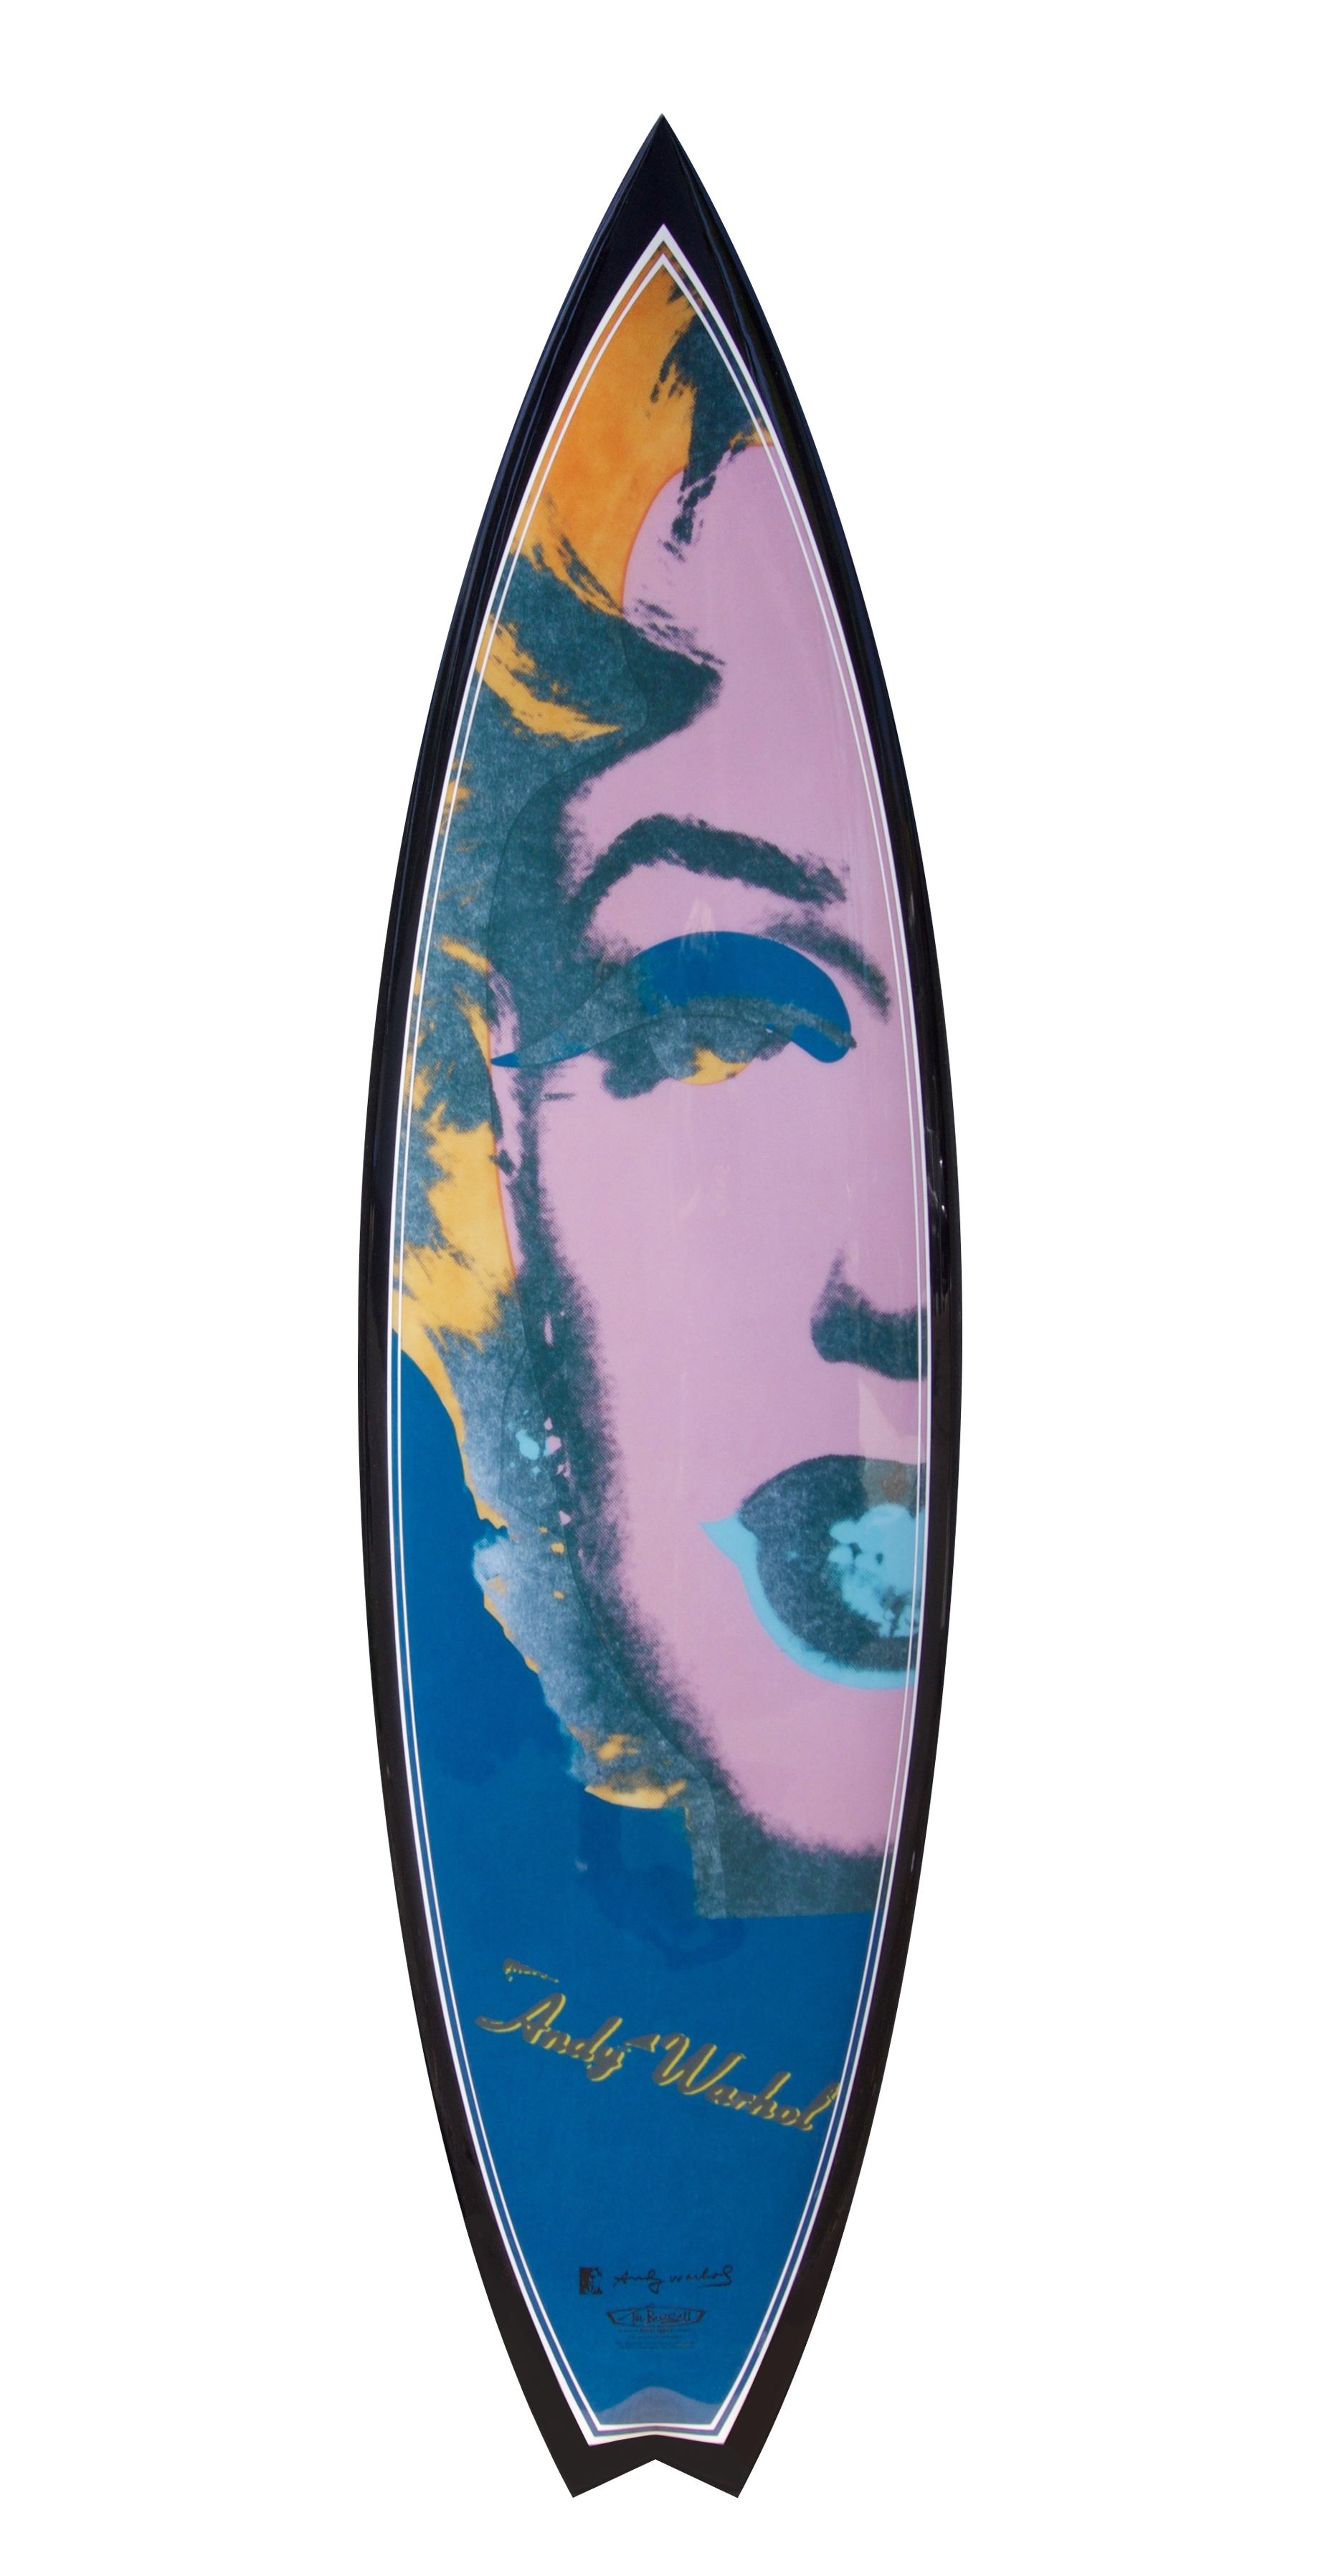 BESSELL_WARHOL_MARILYN(BLUE).png